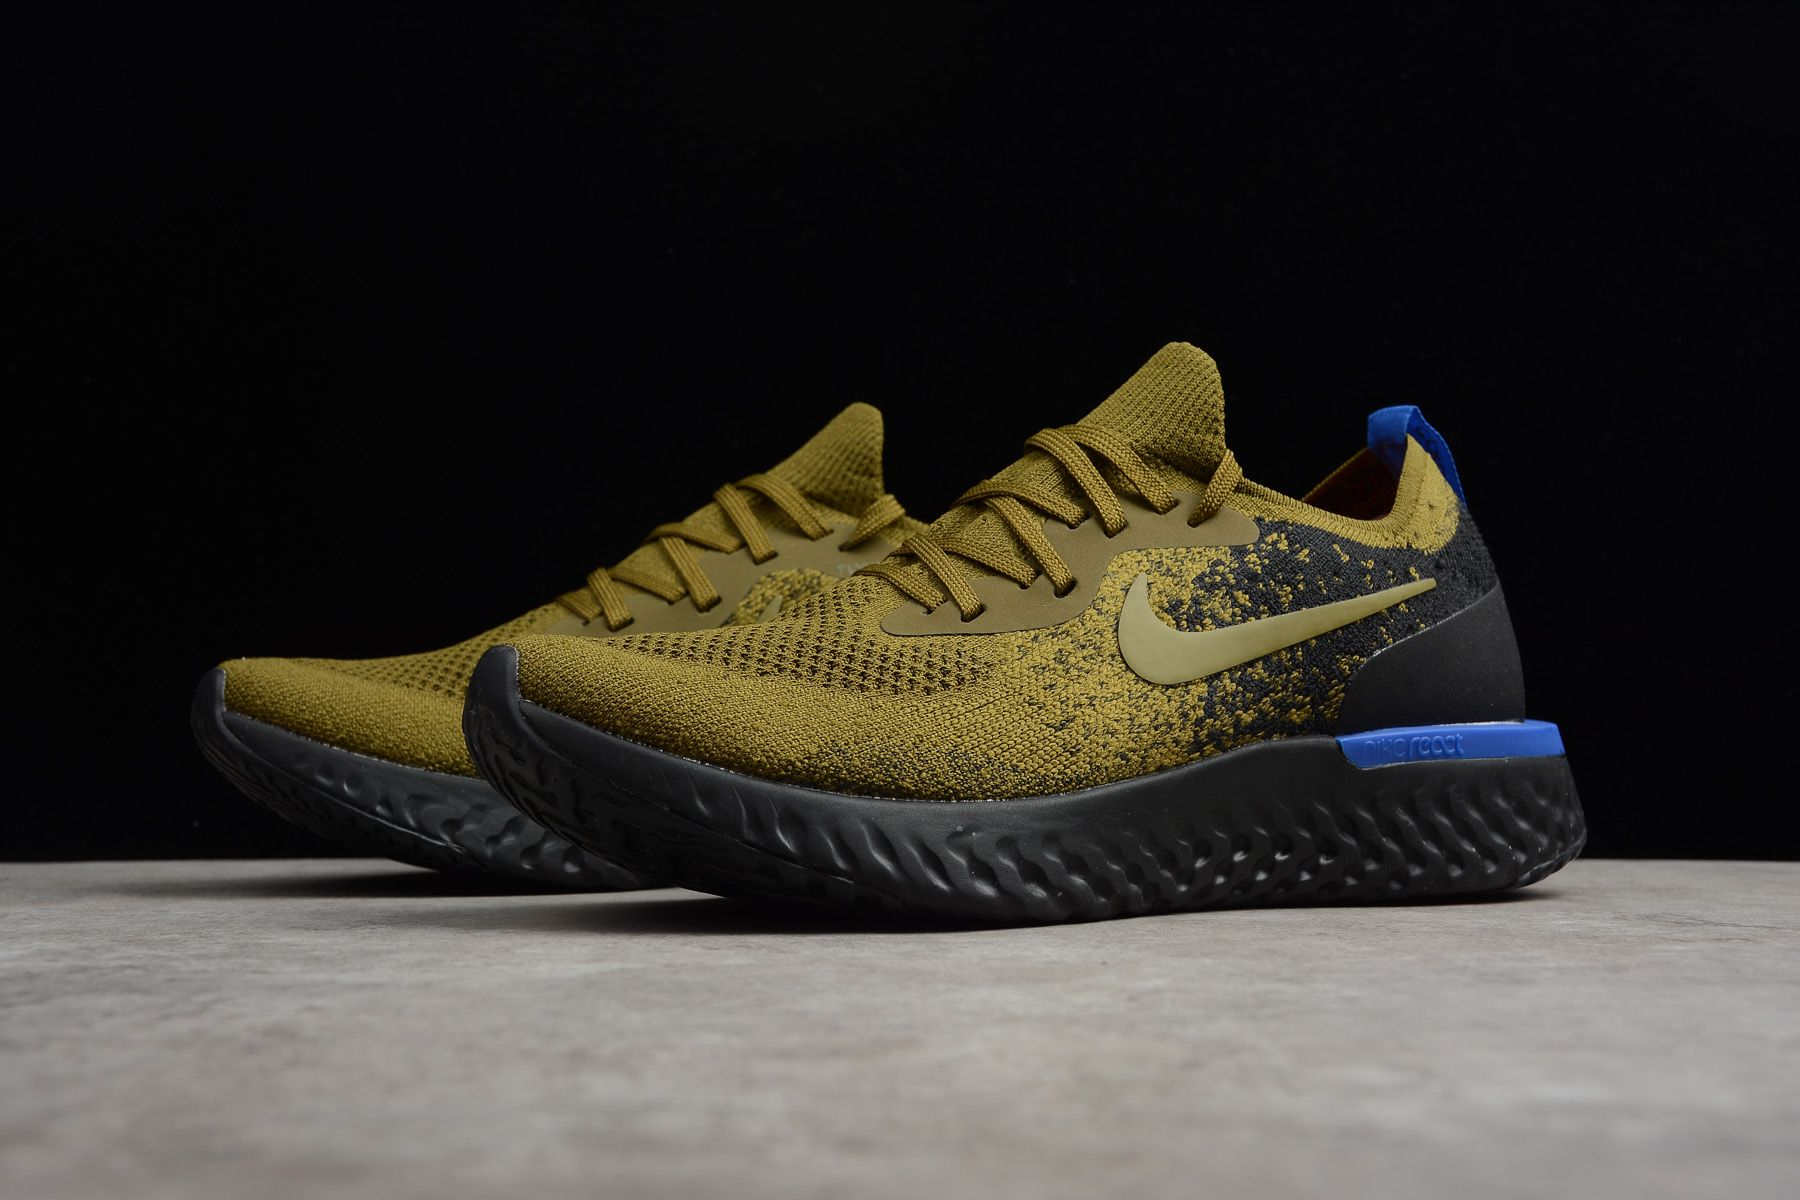 4ade937320c49 Men s Nike Epic React Flyknit Deep Green Gold Black-Blue AQ0067-301 ...